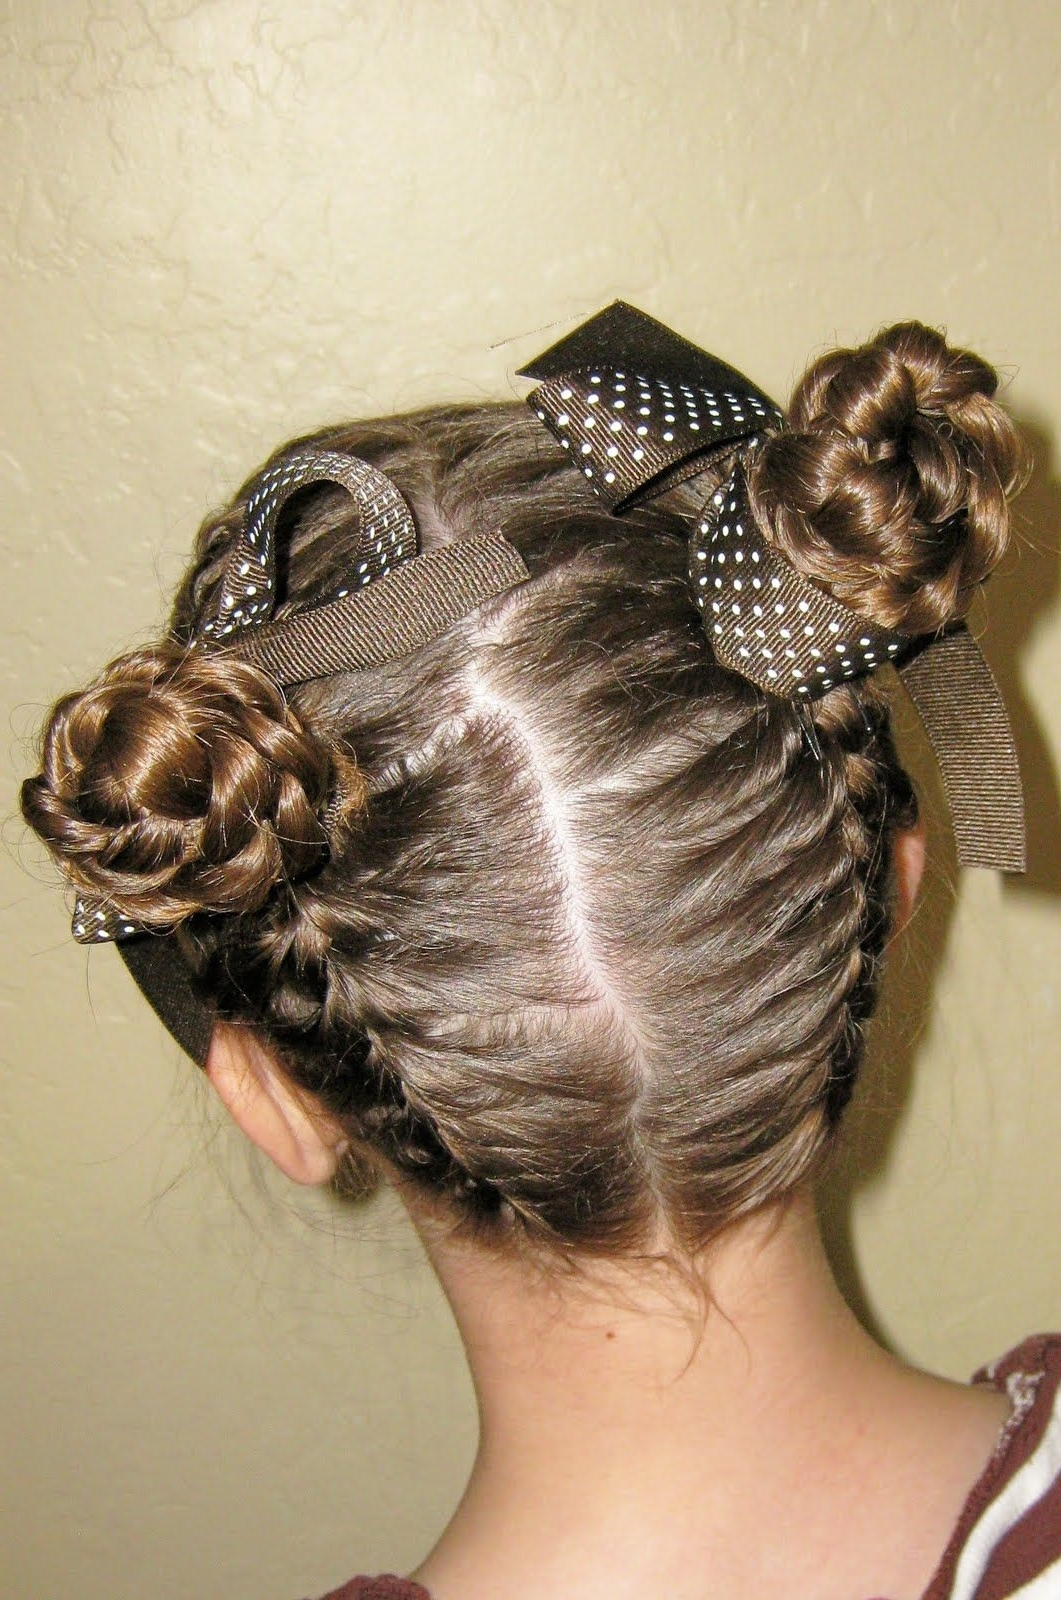 Someday I'll Be A Good Enough French Braider For This: Meet In The With Regard To Most Current Upside Down Braids With Double Buns (View 4 of 15)